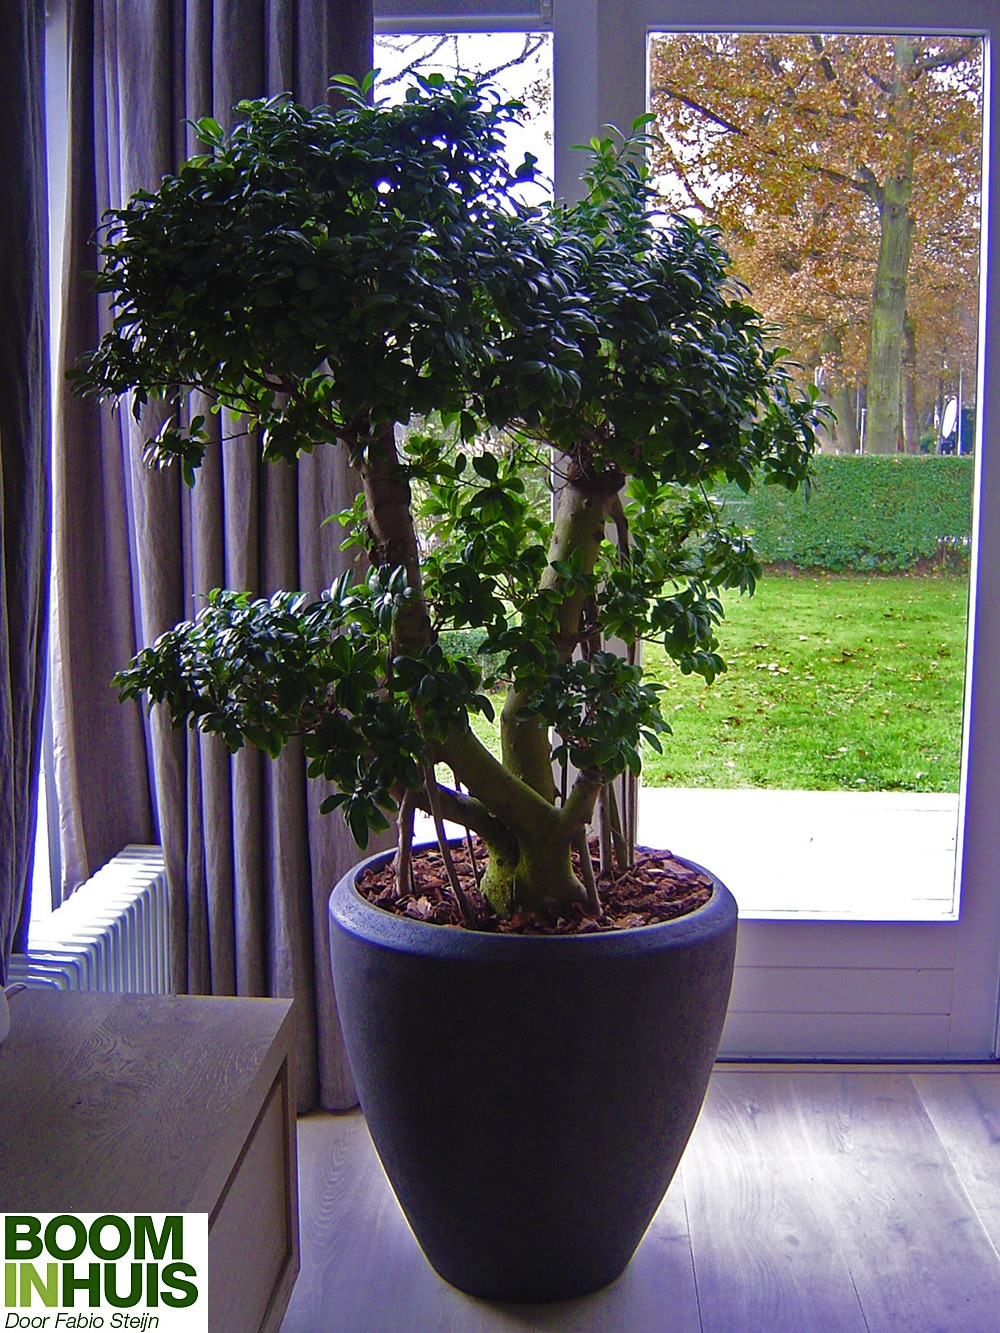 BonsaiBoom-Bonsai-Boom-Plantenbak-Zwart